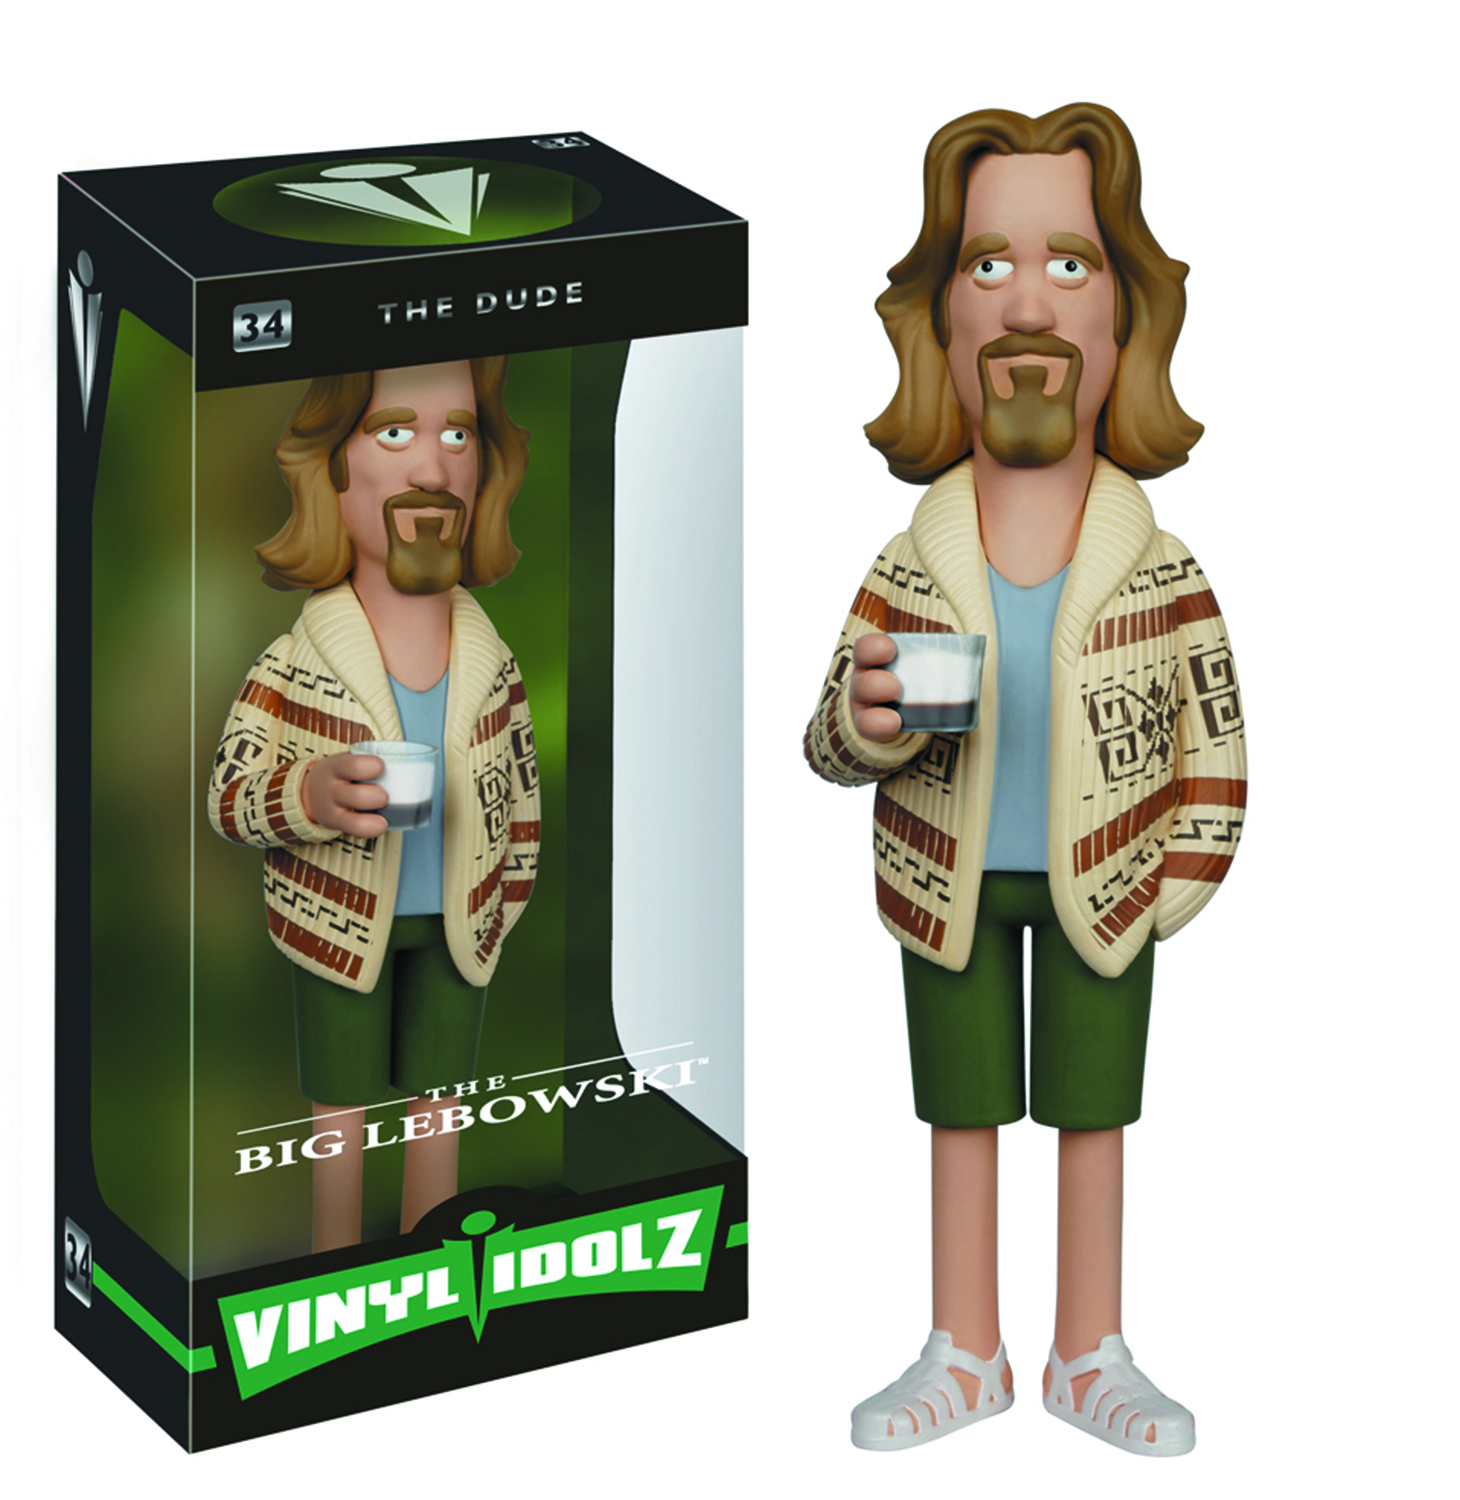 VINYL IDOLZ BIG LEBOWSKI THE DUDE VINYL FIG